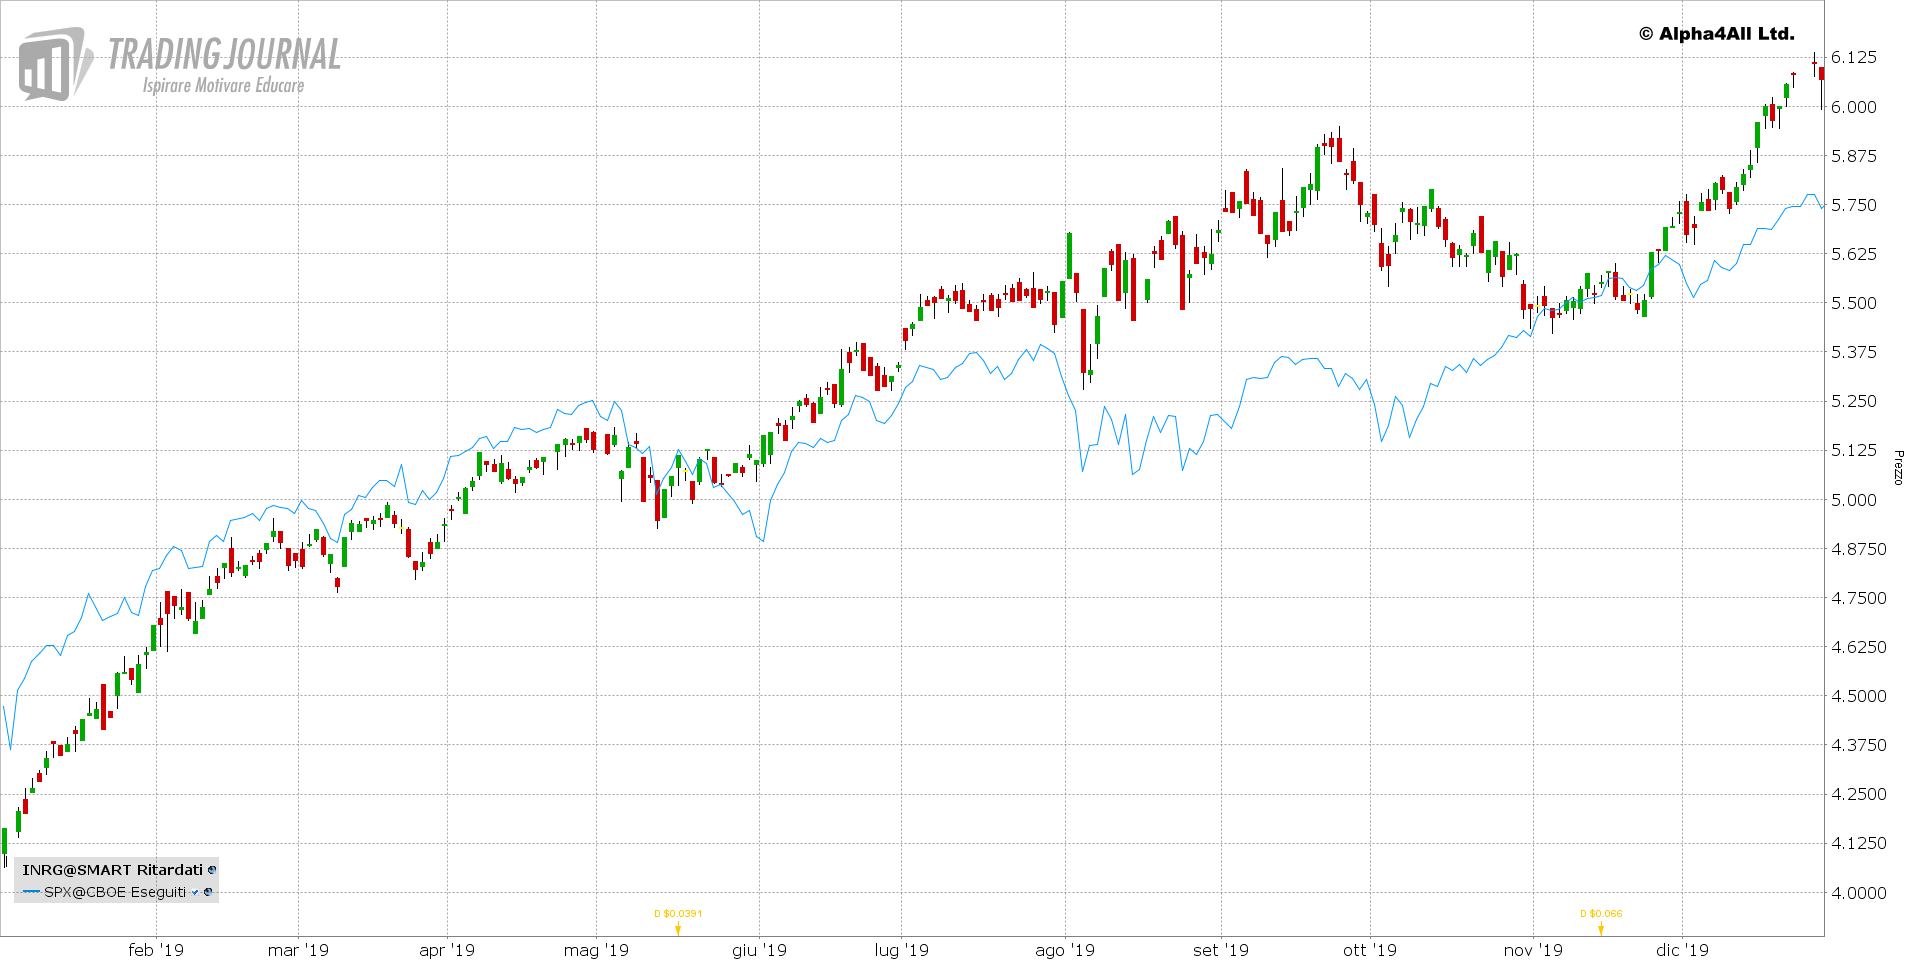 Grafico 1. IShares Global Clean Energy UCITS ETF vs S&P500